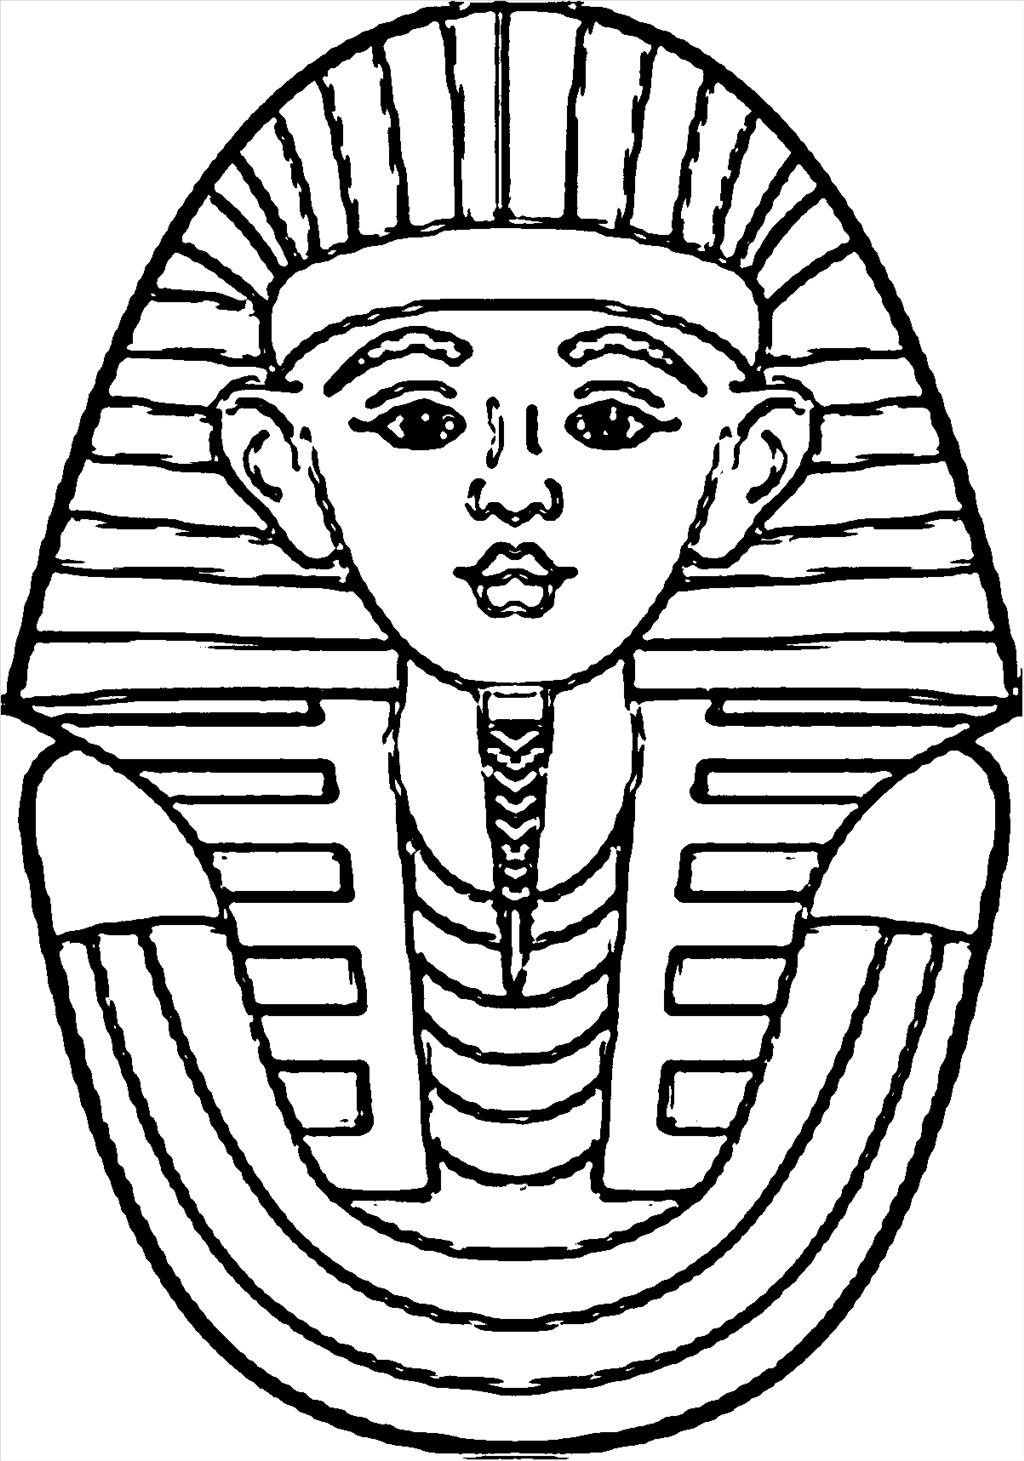 3 Sarcophagus Drawing Kid For Free Download On Ayoqq - Free Printable Sarcophagus